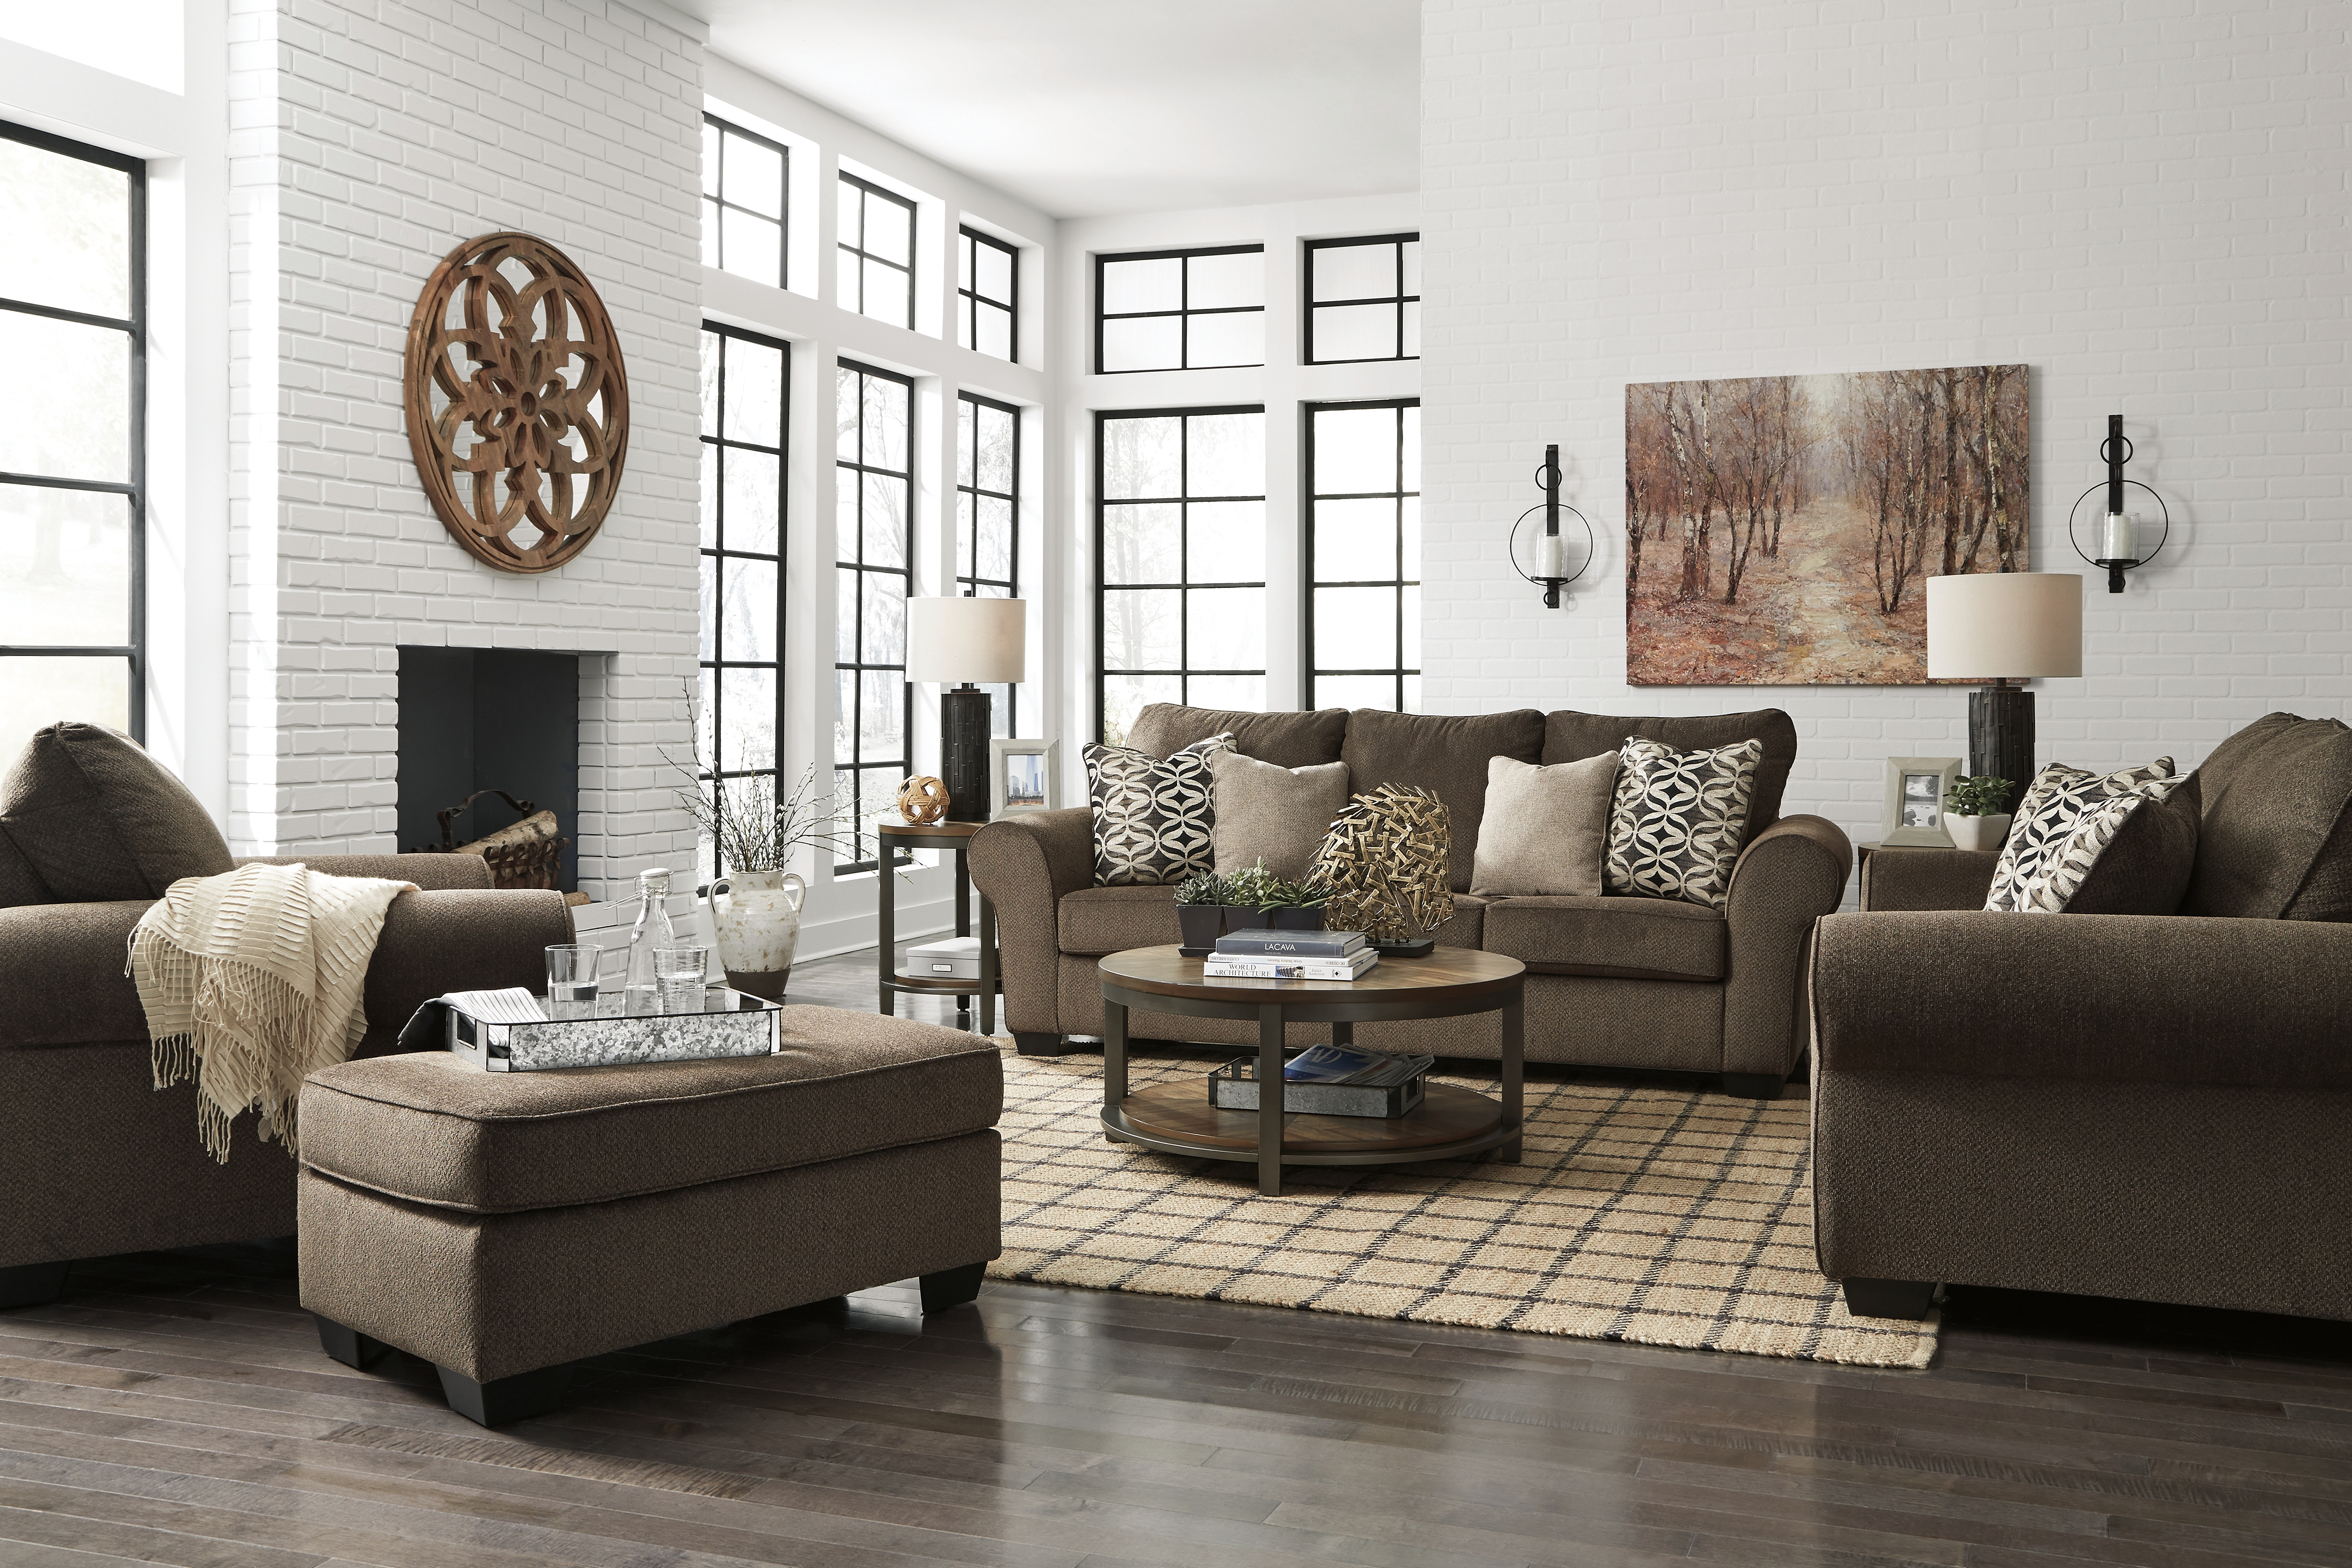 Nesso Sofa by Benchcraft - 100321998   Turner's Budget ...